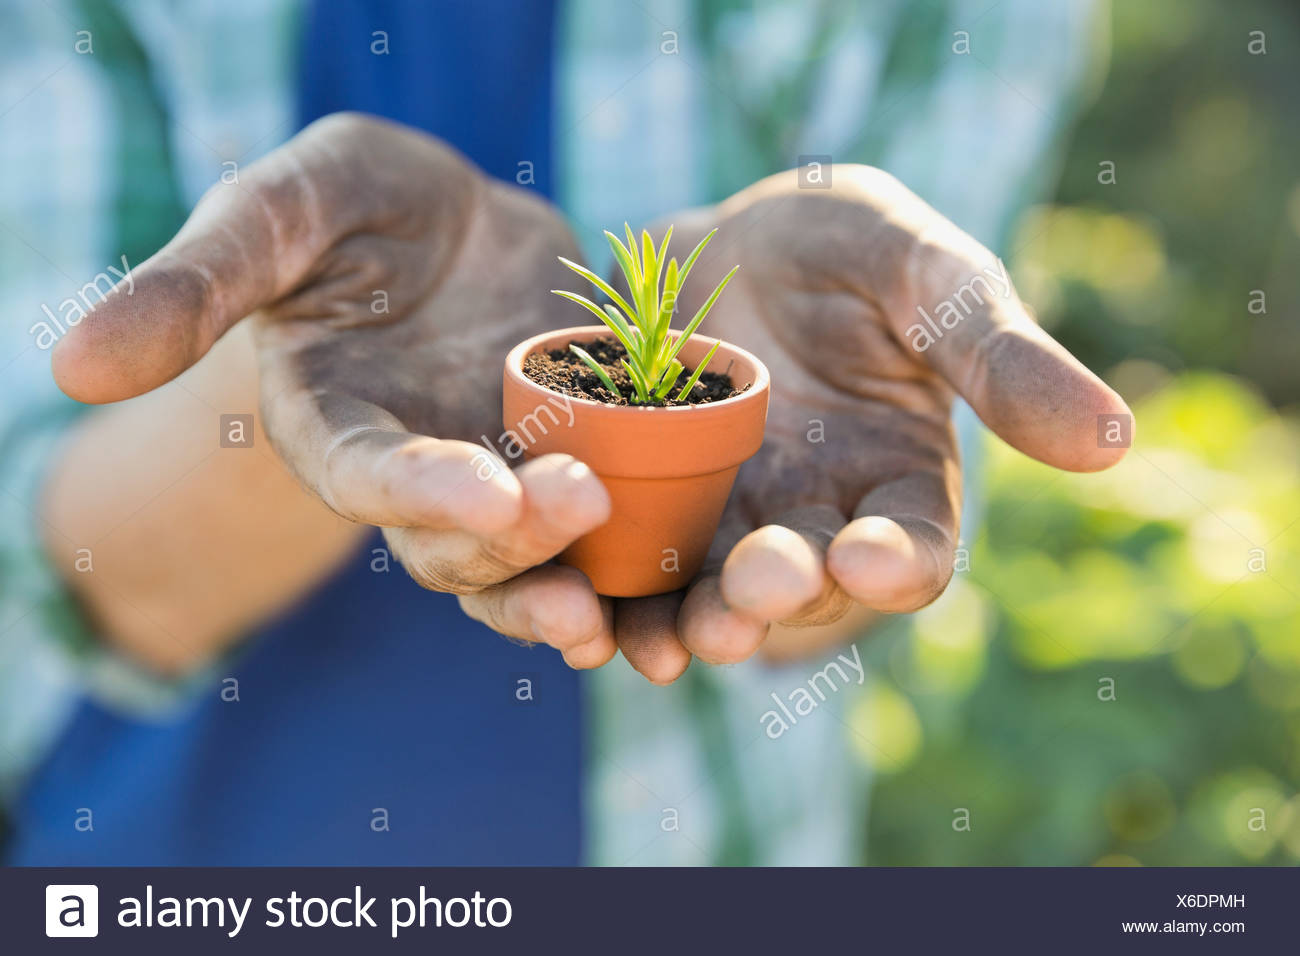 Man holding up tiny potted plant - Stock Image